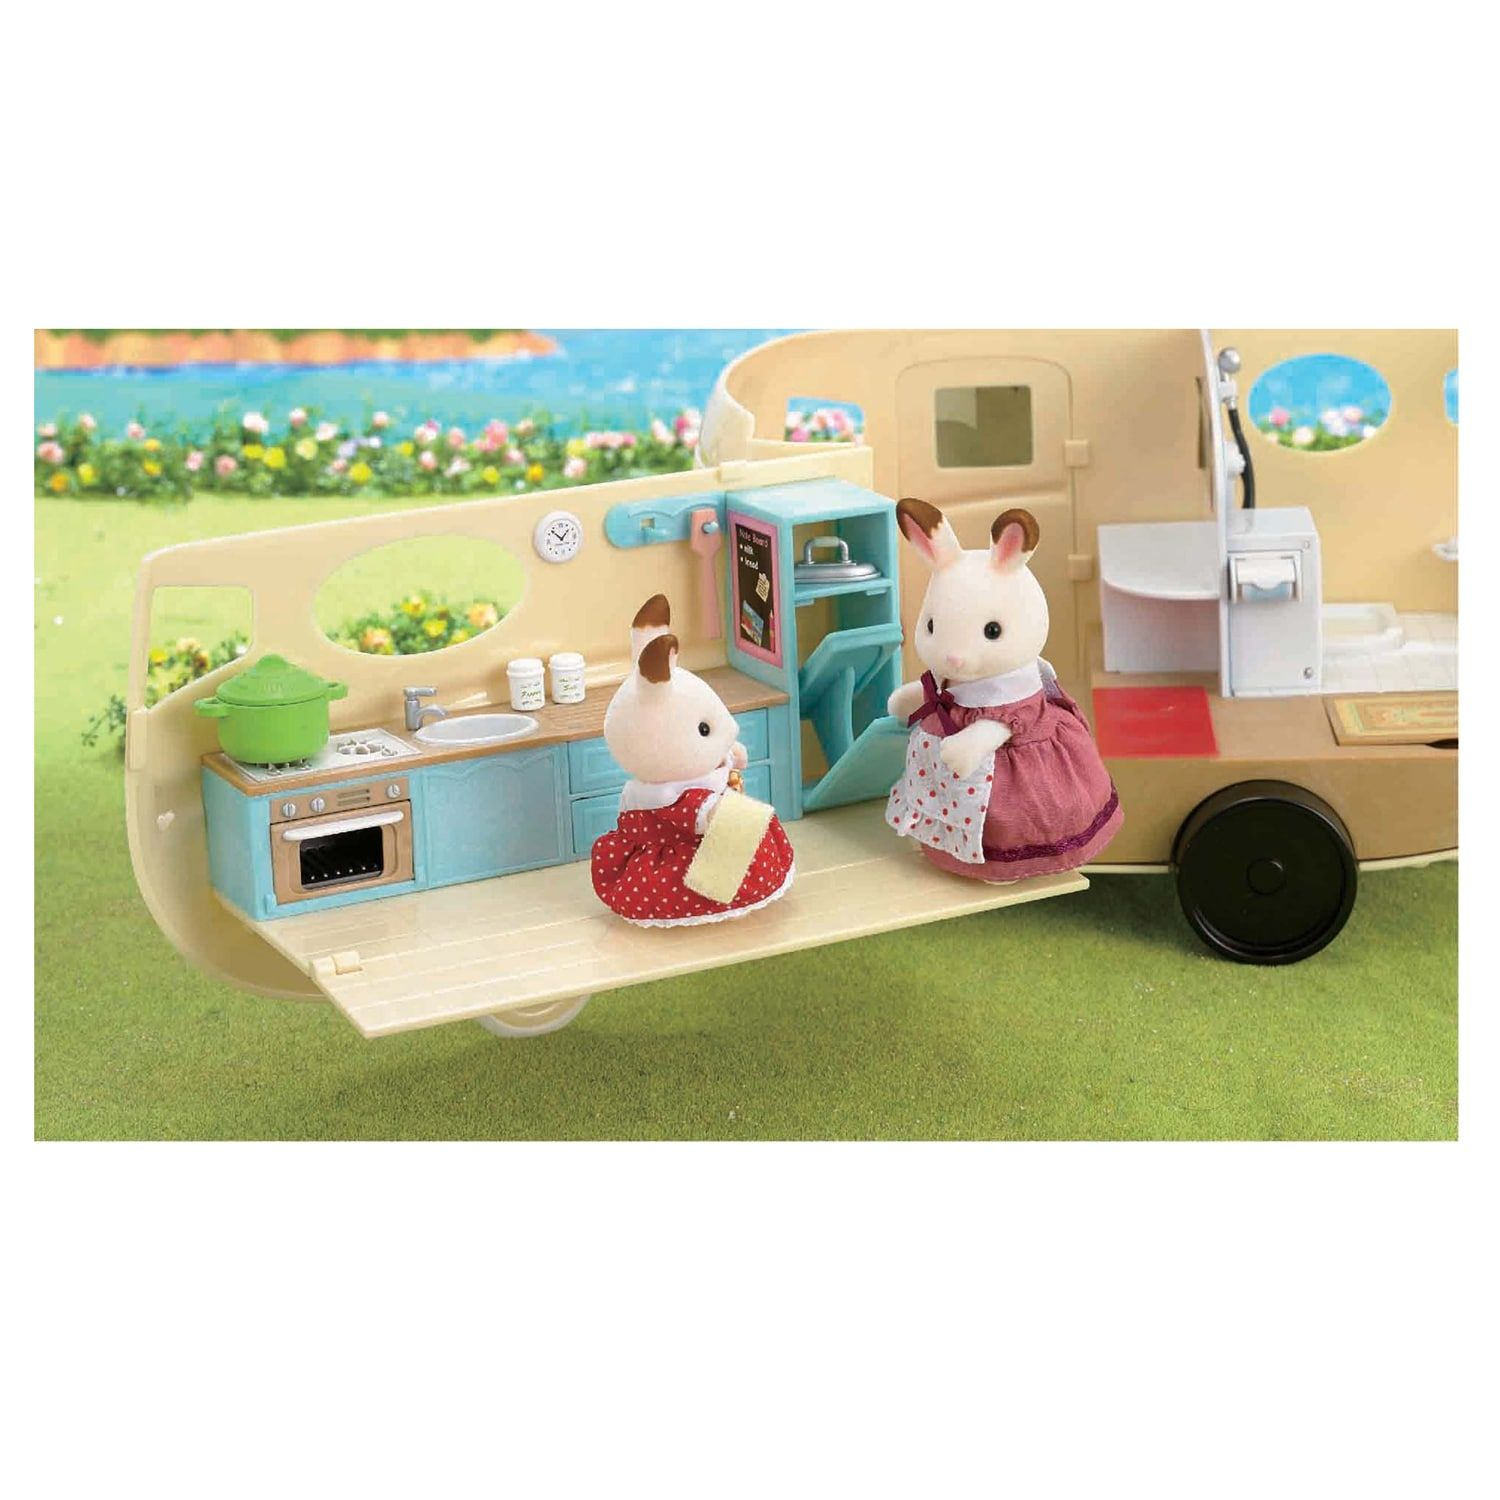 Calico Critters Caravan Family Camper Critters, Calico